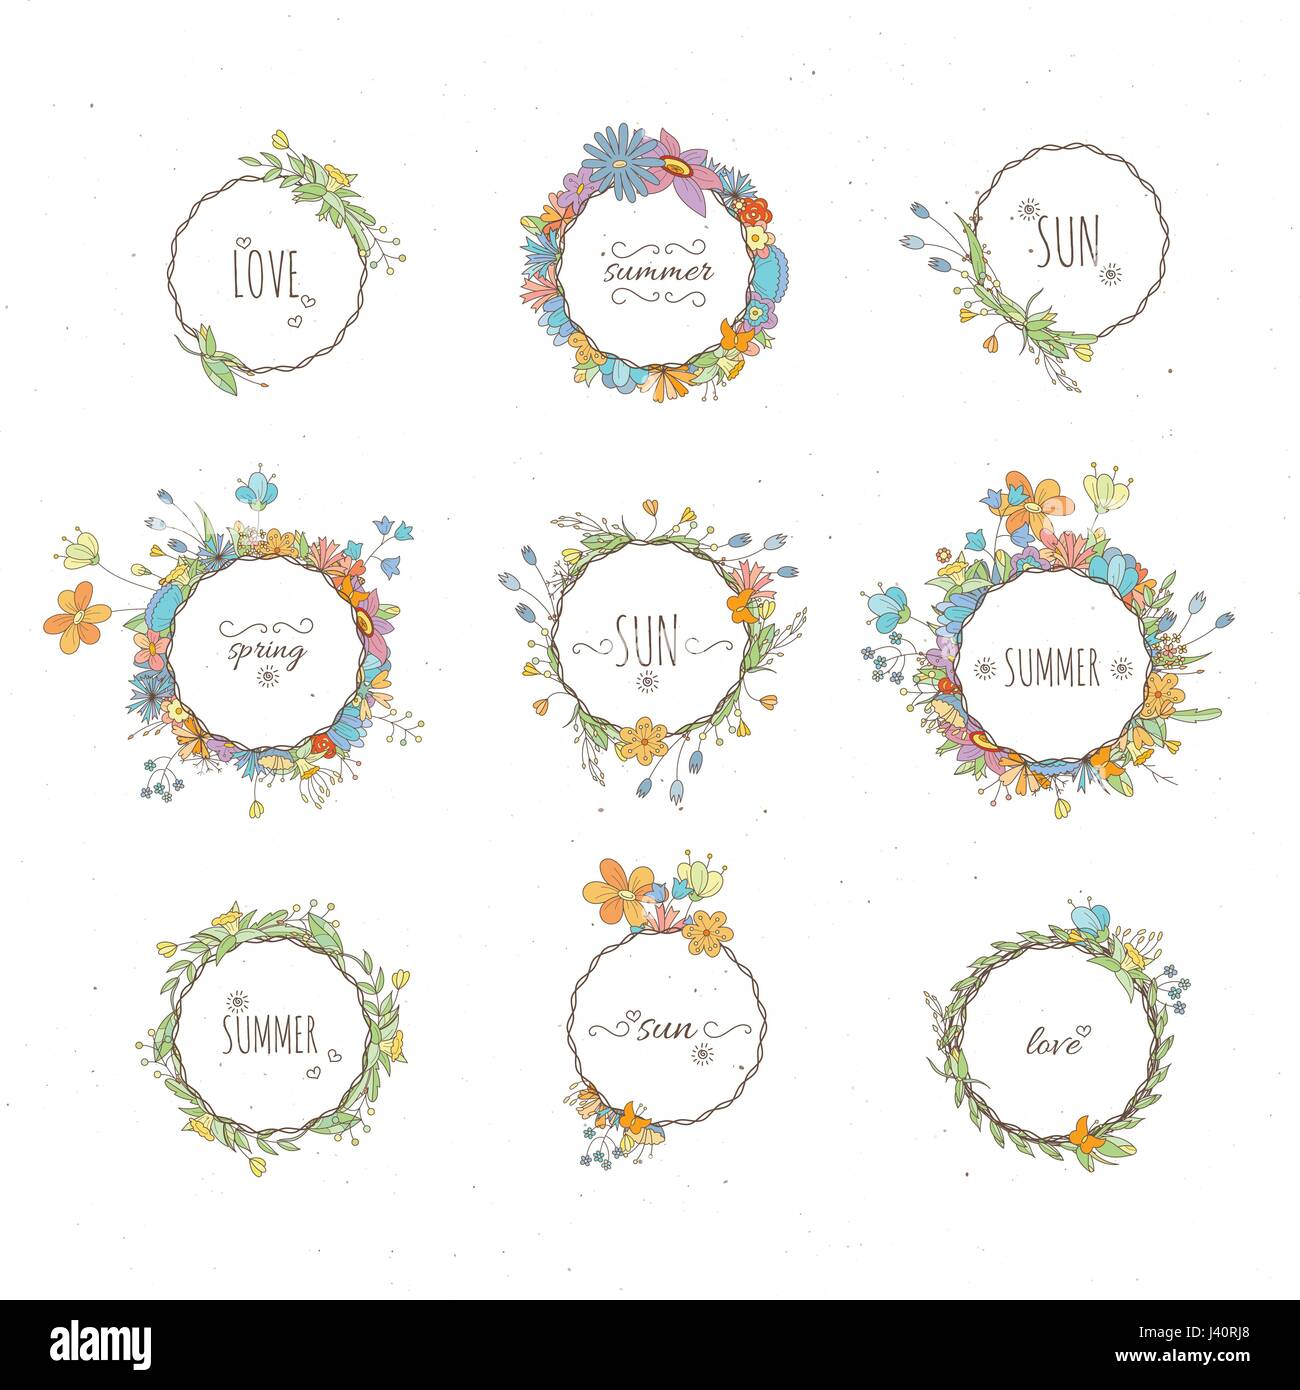 Rustic Hand Drawn Flower Elements Set Vector Floral Doodles Branches Flowers Laurels And Frames Border Collection For Greeting Cards Invitati